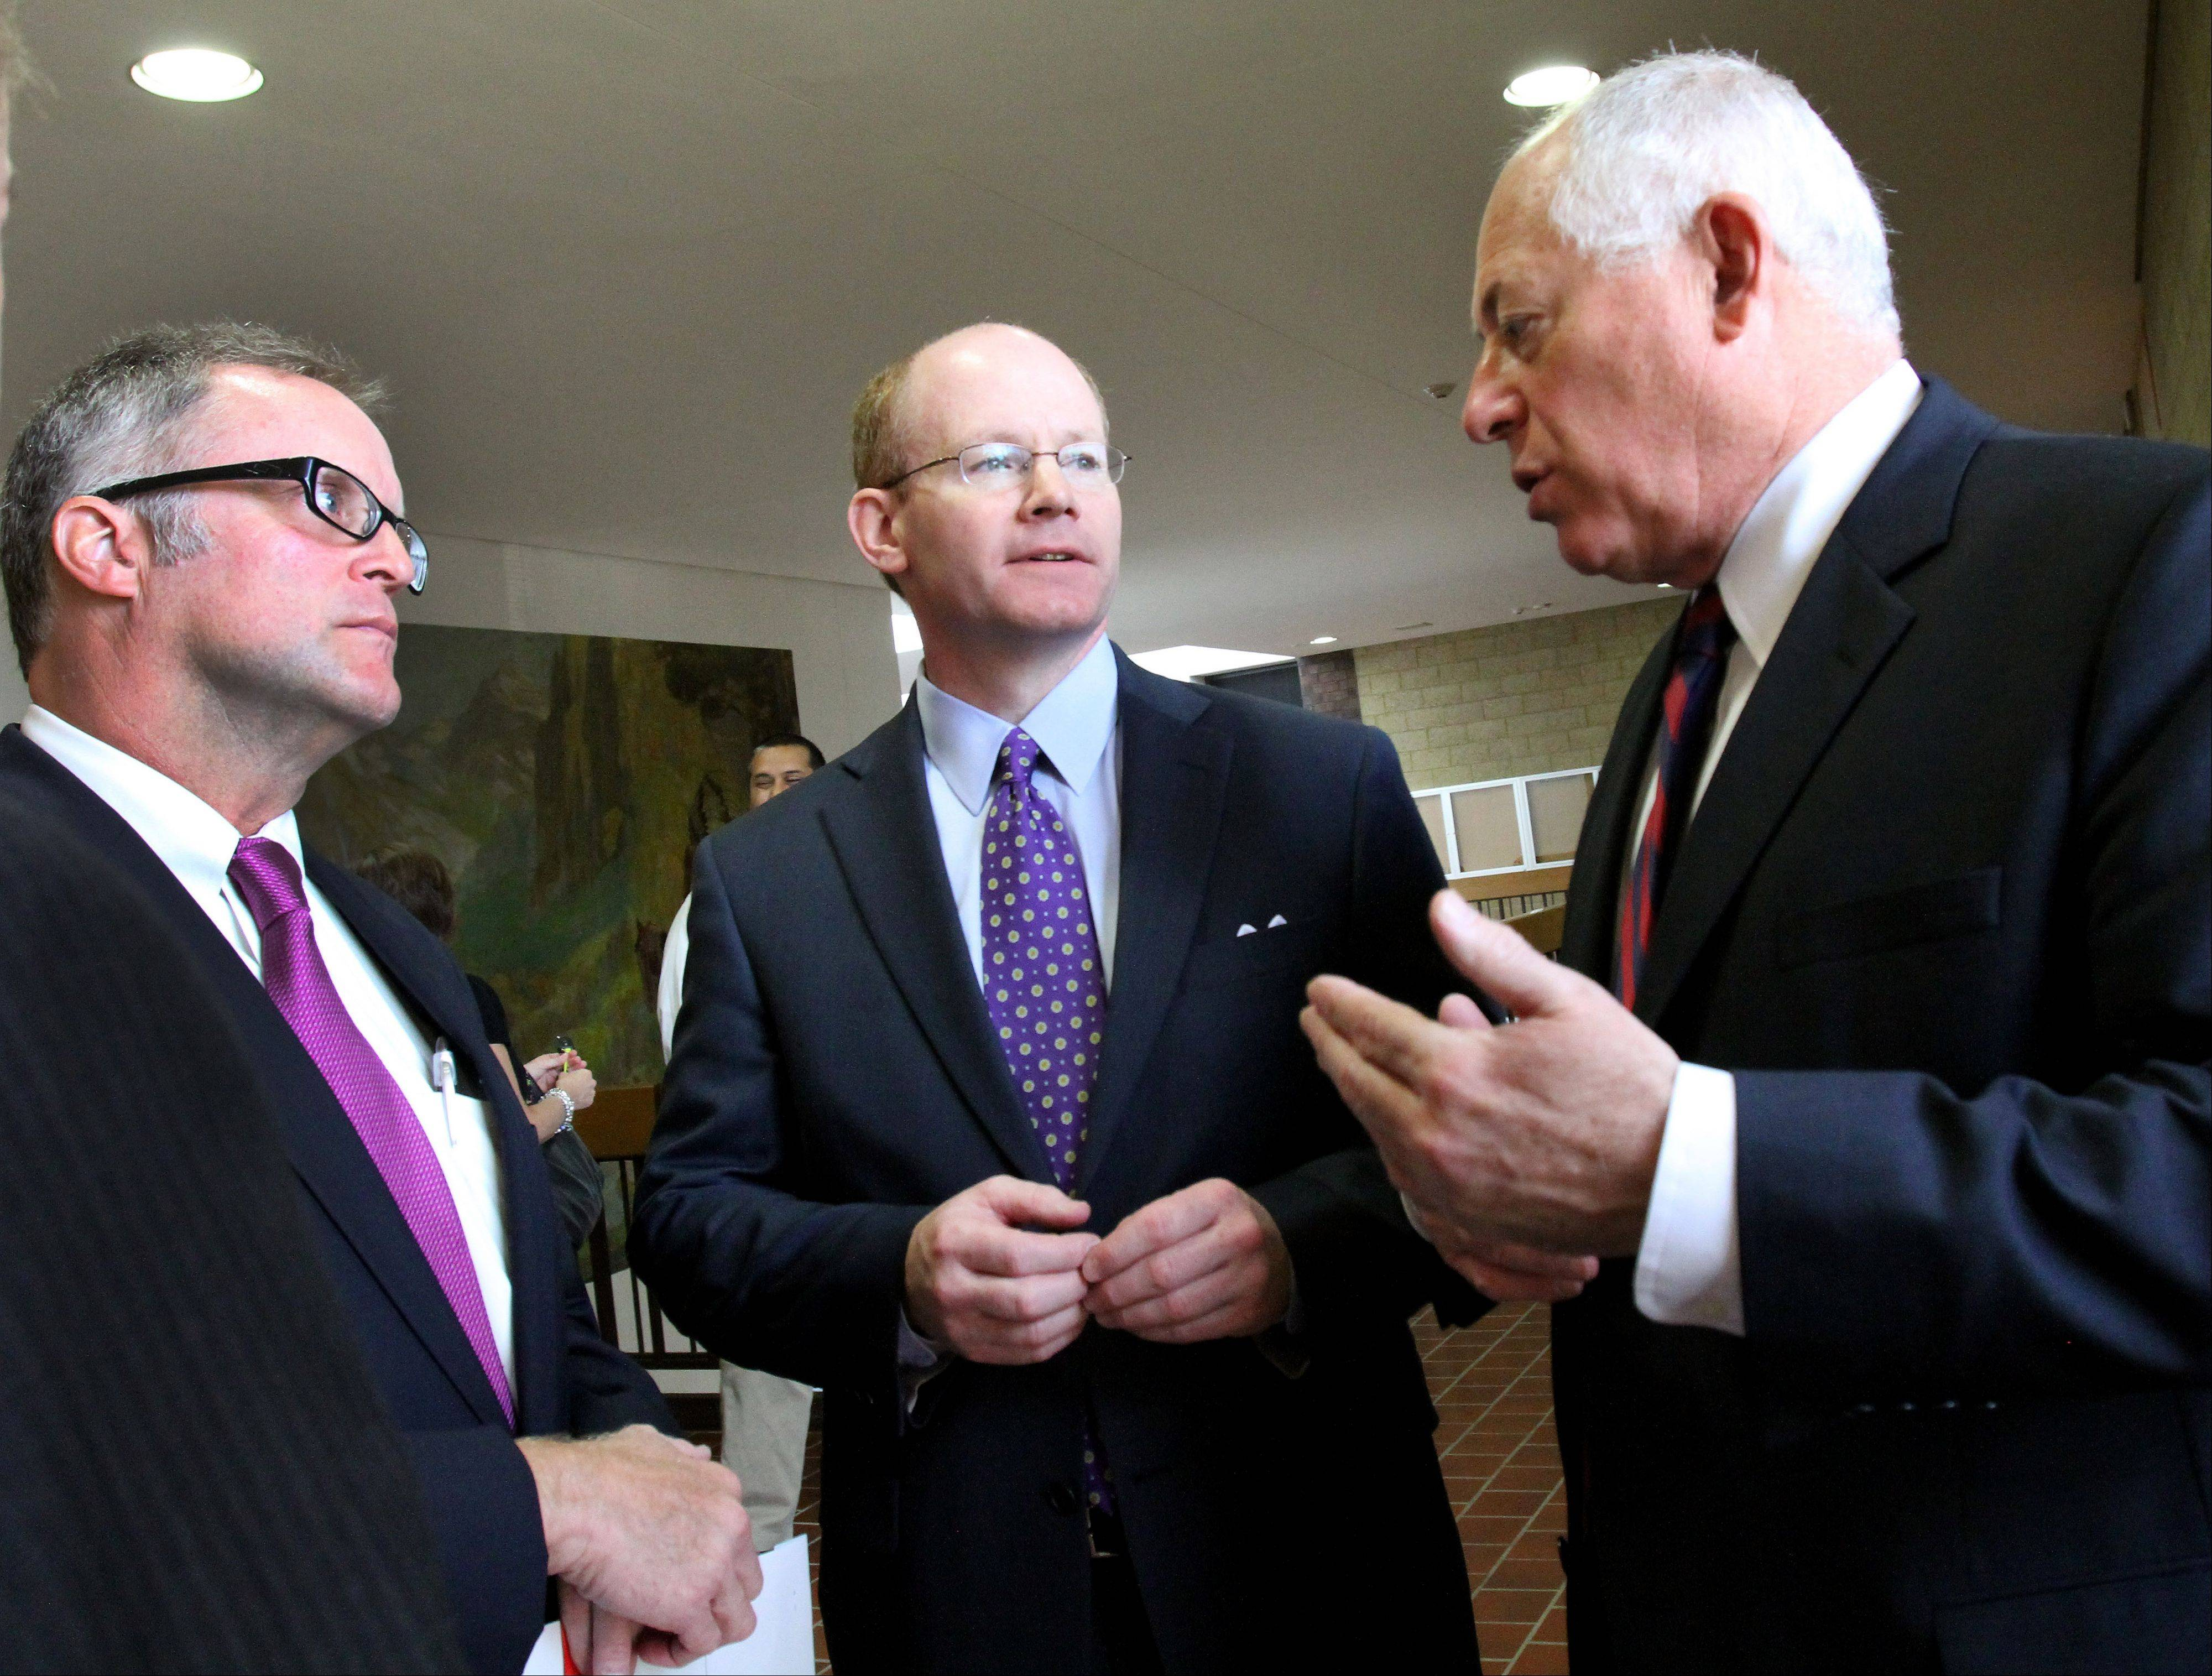 Gov. Pat Quinn speaks with DuPage County Board Chairman Dan Cronin, left, and state Sen. Don Harmon, center, Friday in Wheaton after Quinn signed a new law giving DuPage the authority to eliminate up to 13 local governmental entities.